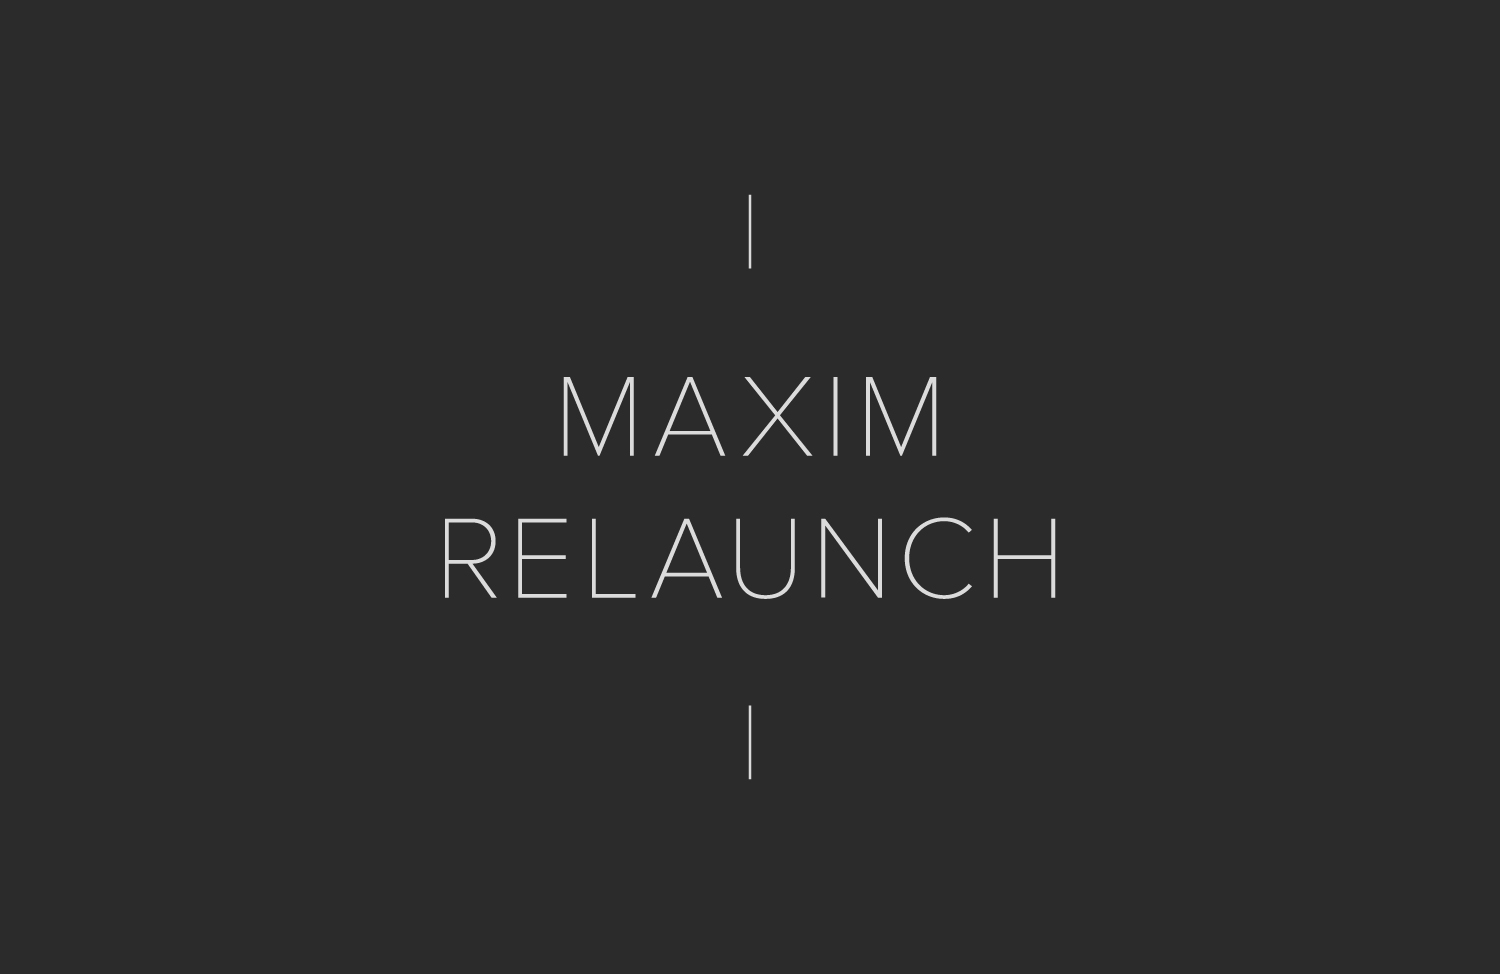 SS_template_maxim_CS3_graphic_pgs_relaunch.jpg